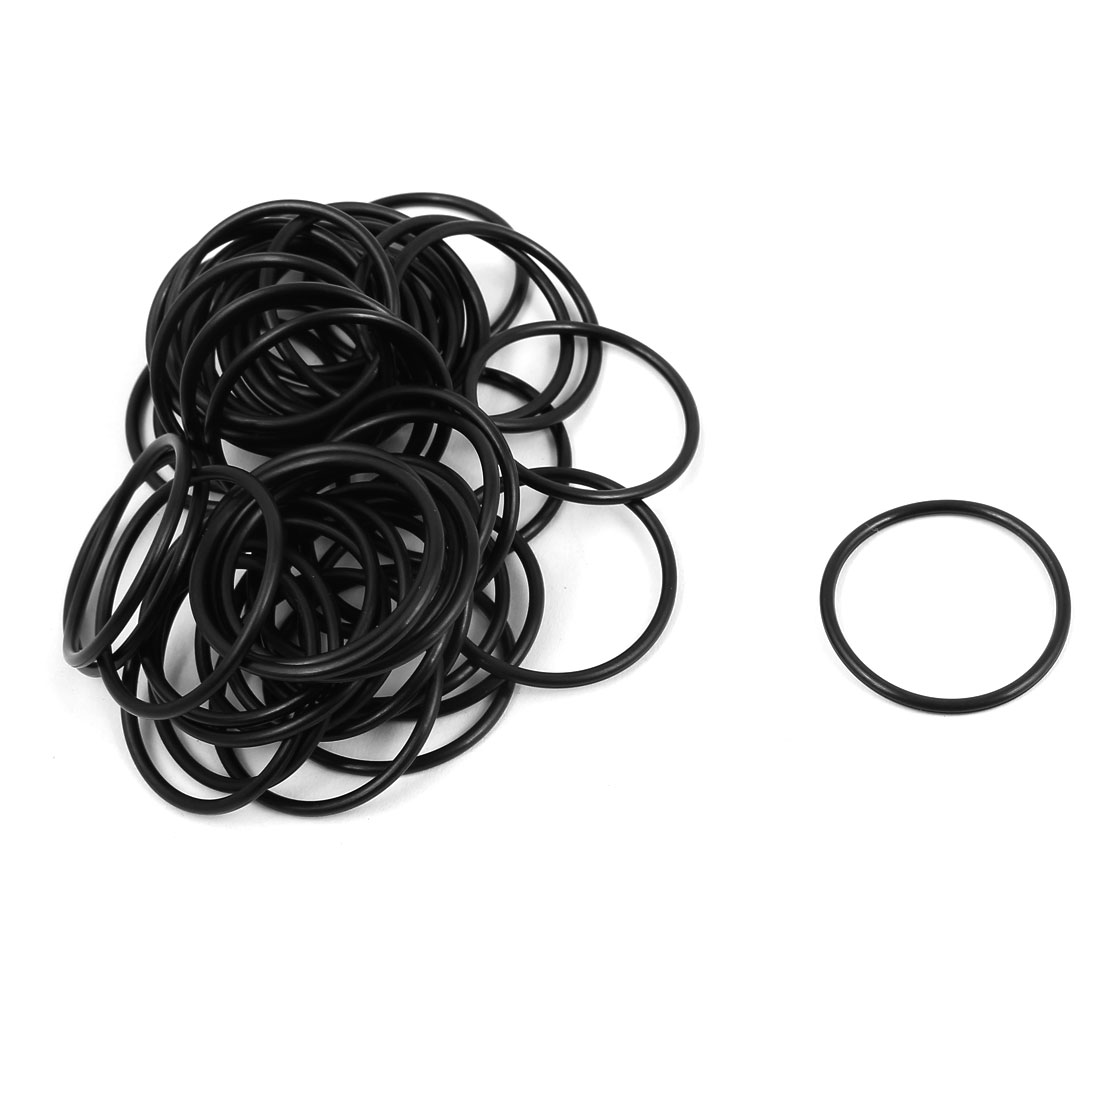 50 Pcs 25mm x 1.5mm Rubber O-rings NBR Heat Resistant Sealing Ring Grommets